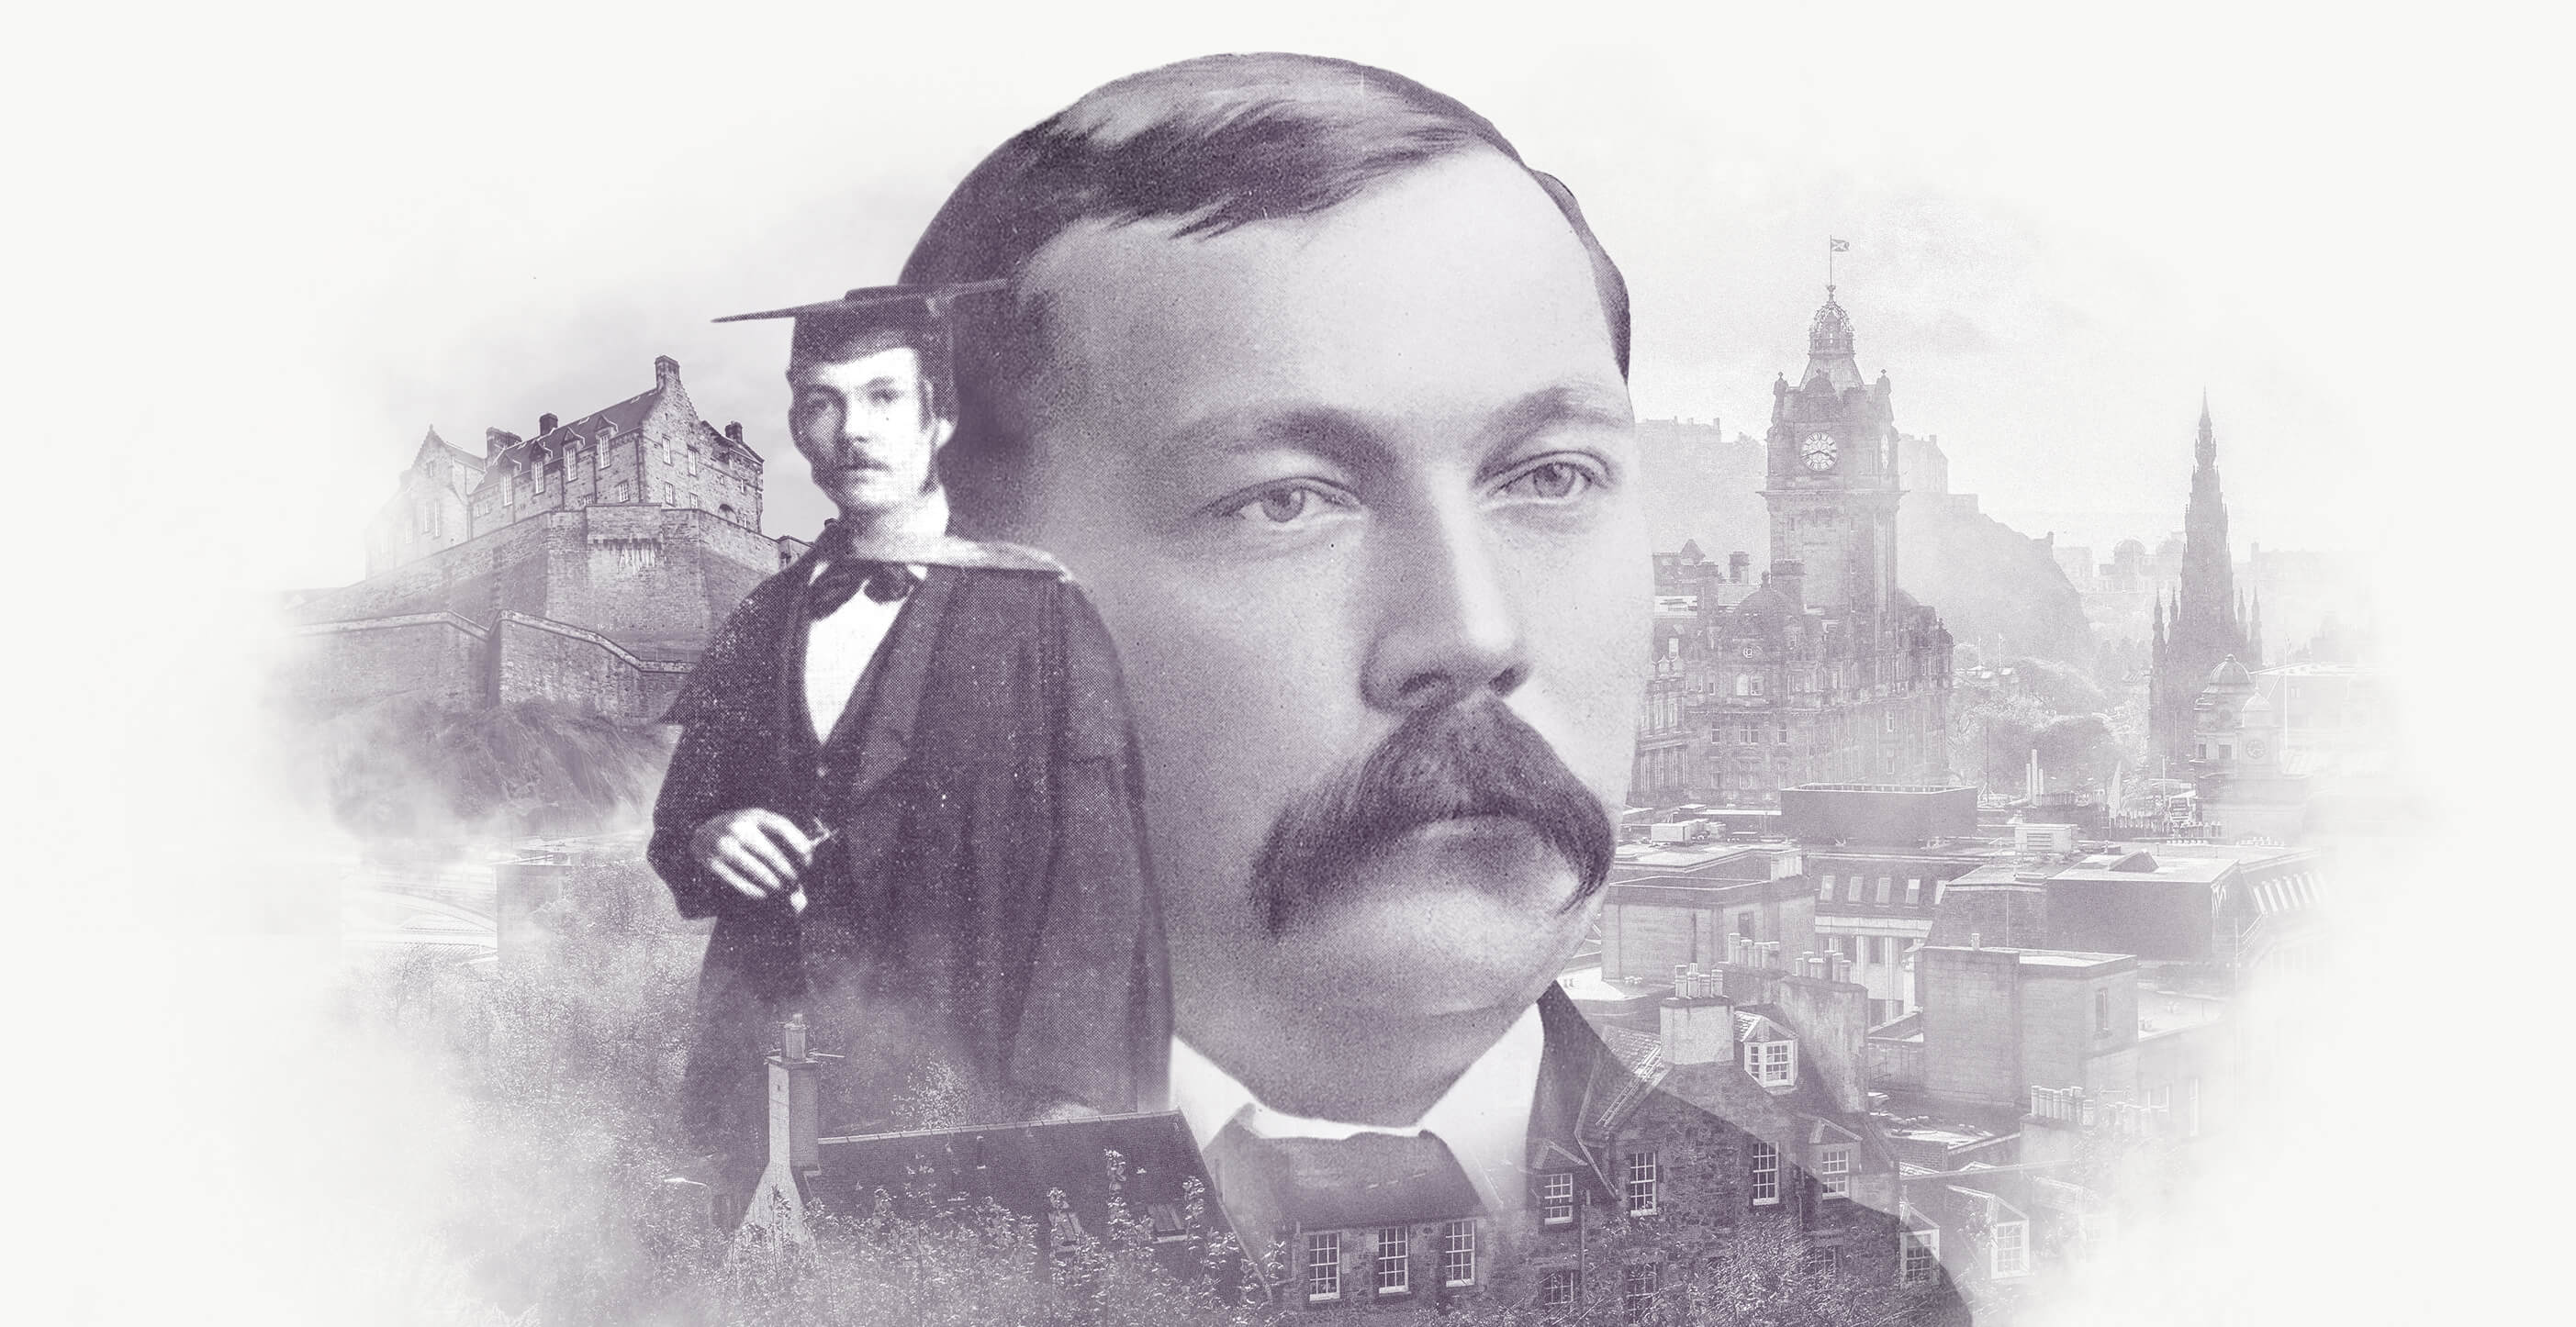 Arthur Conan Doyle The Physician Montage